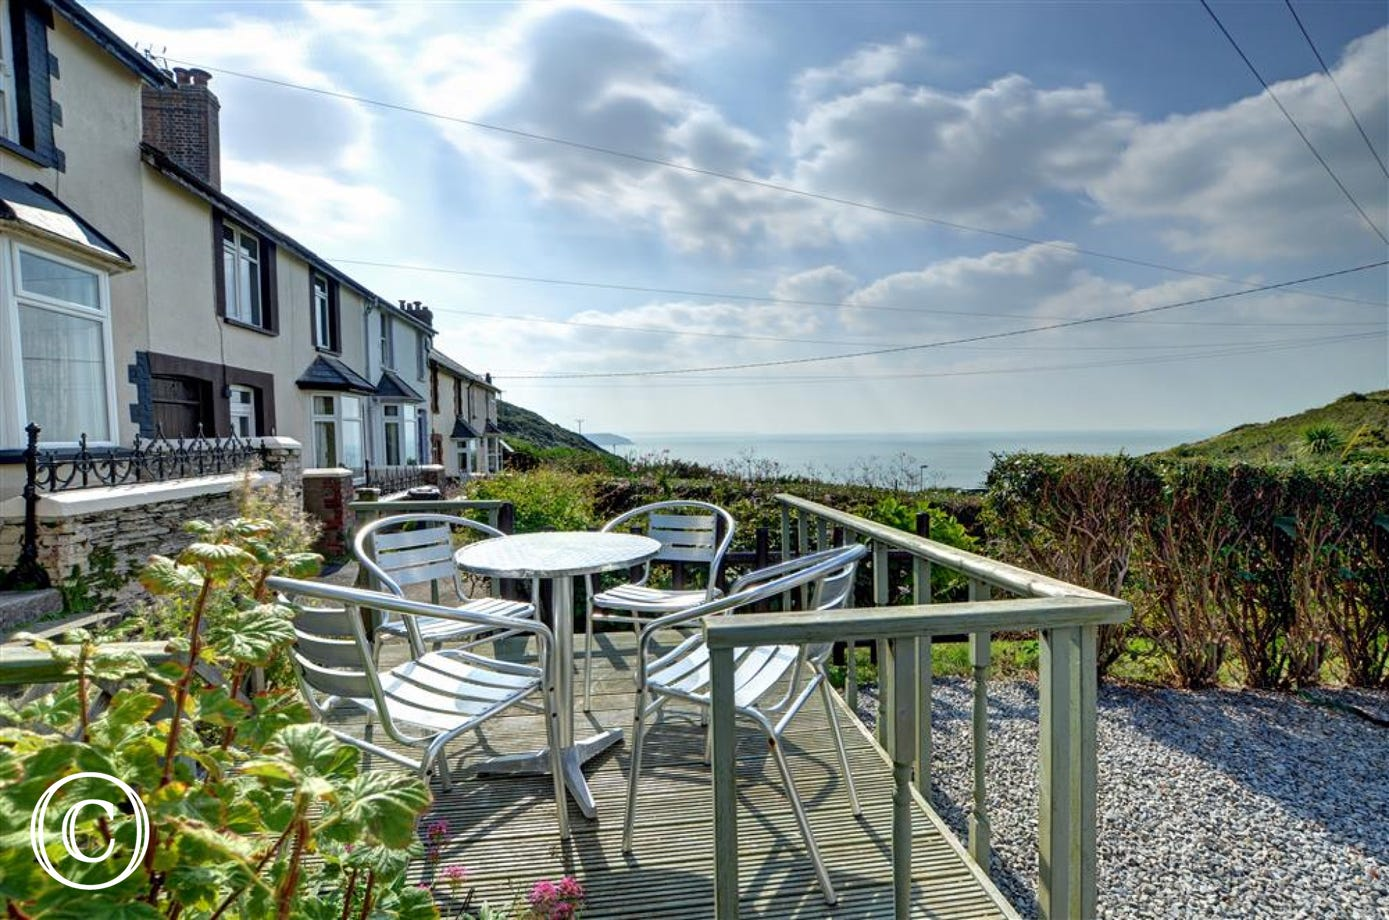 Seaview Cottage is close to the coastal path and just a few minutes walk from the pretty village centre